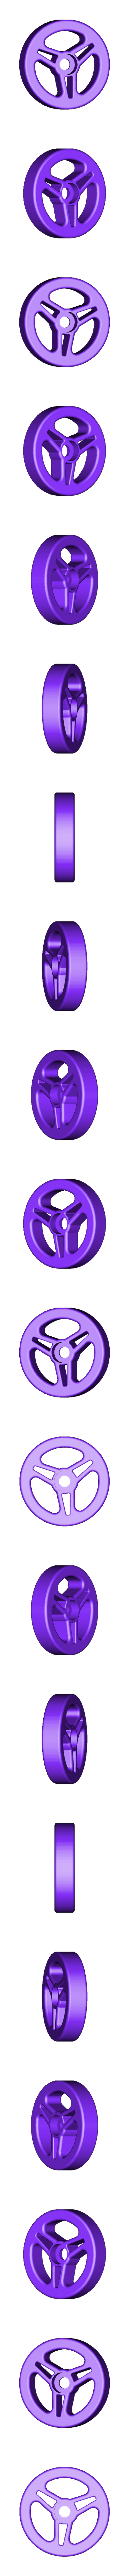 Wheel.stl Download free STL file FlyTime Quadcopter Skate Park Kit Wheels • 3D print model, Tomkanovik